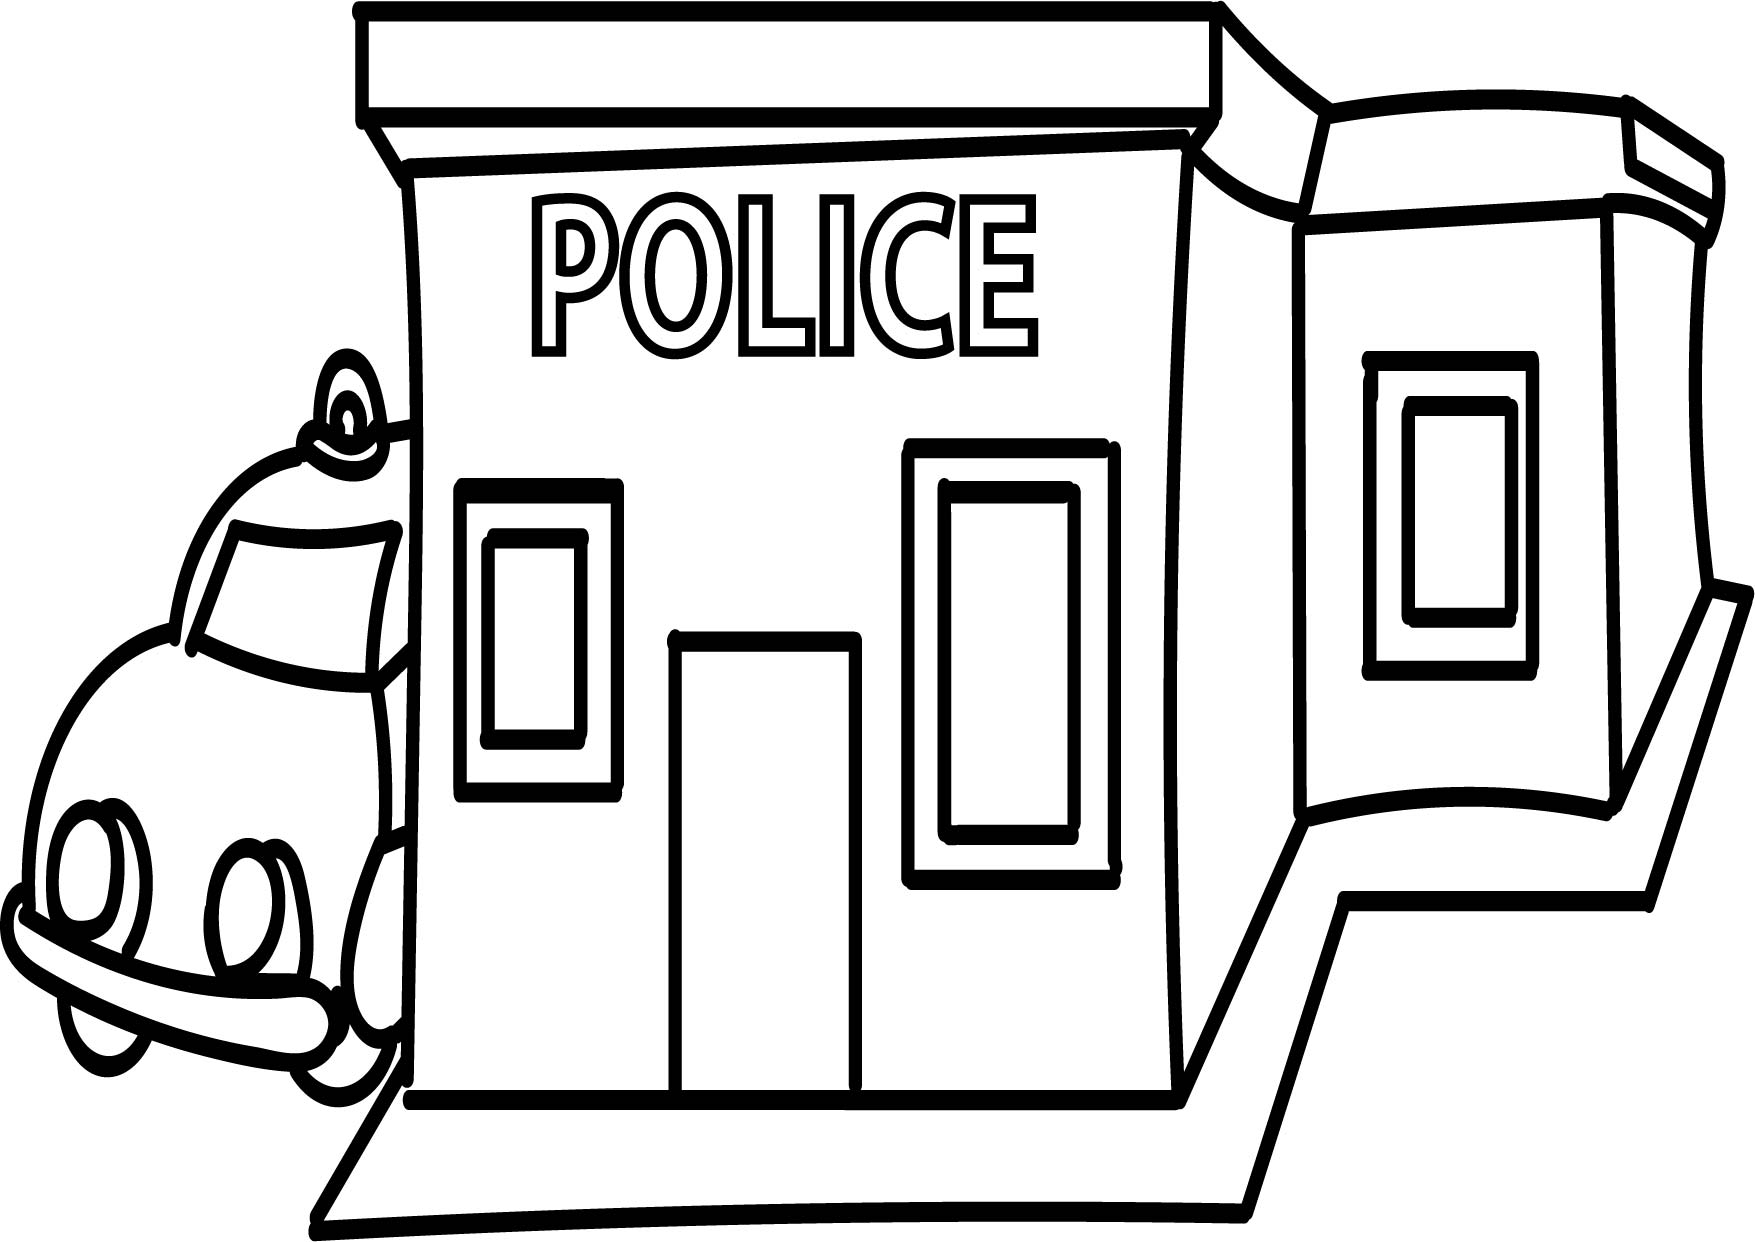 library building black and white police station coloring indian police station clipart police station clipart free